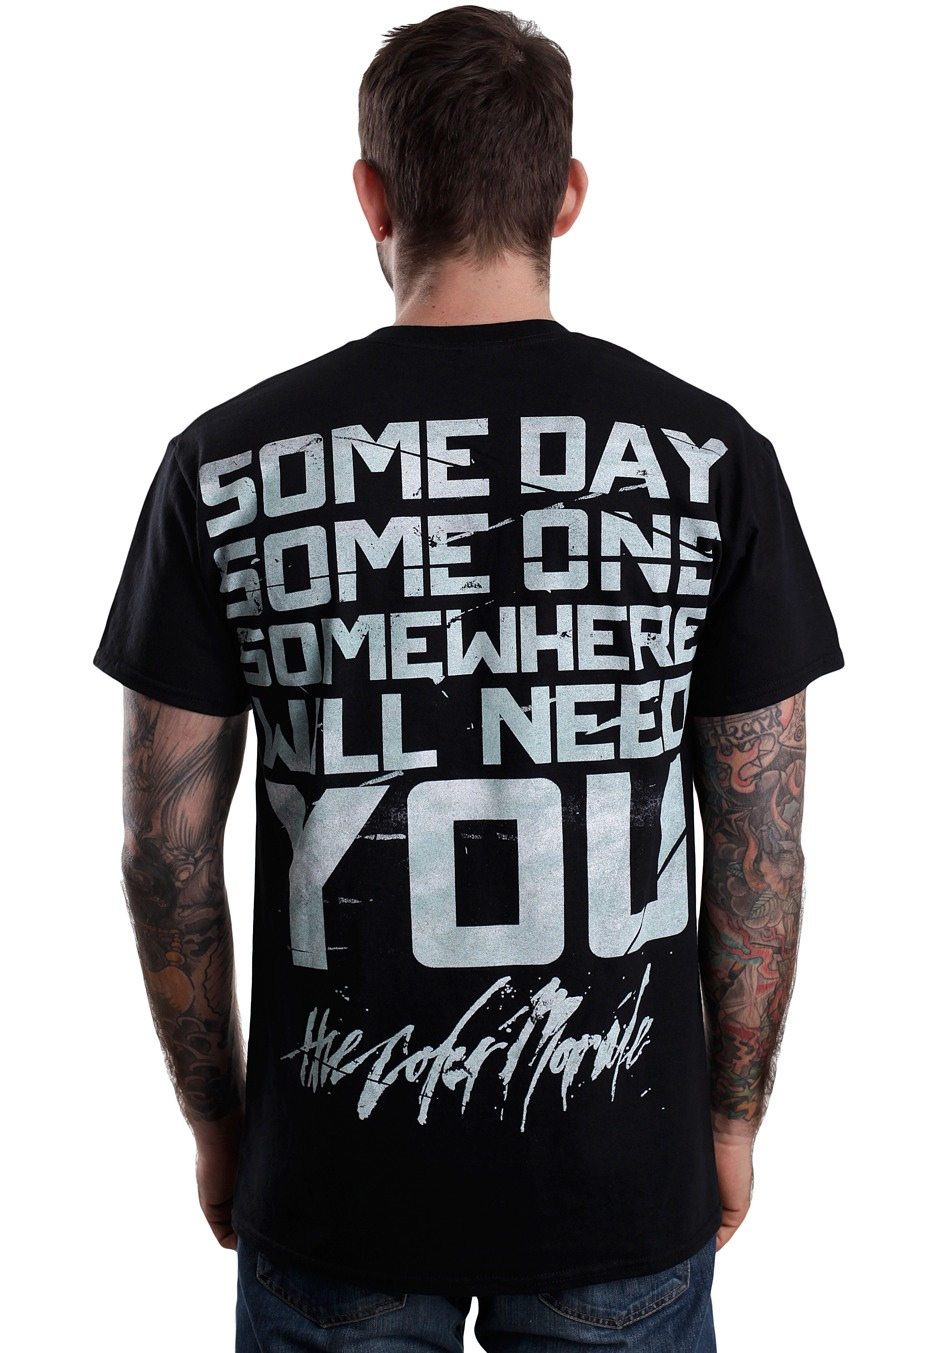 062e6bcd The Color Morale - Through - T-Shirt - Official Post Hardcore ...